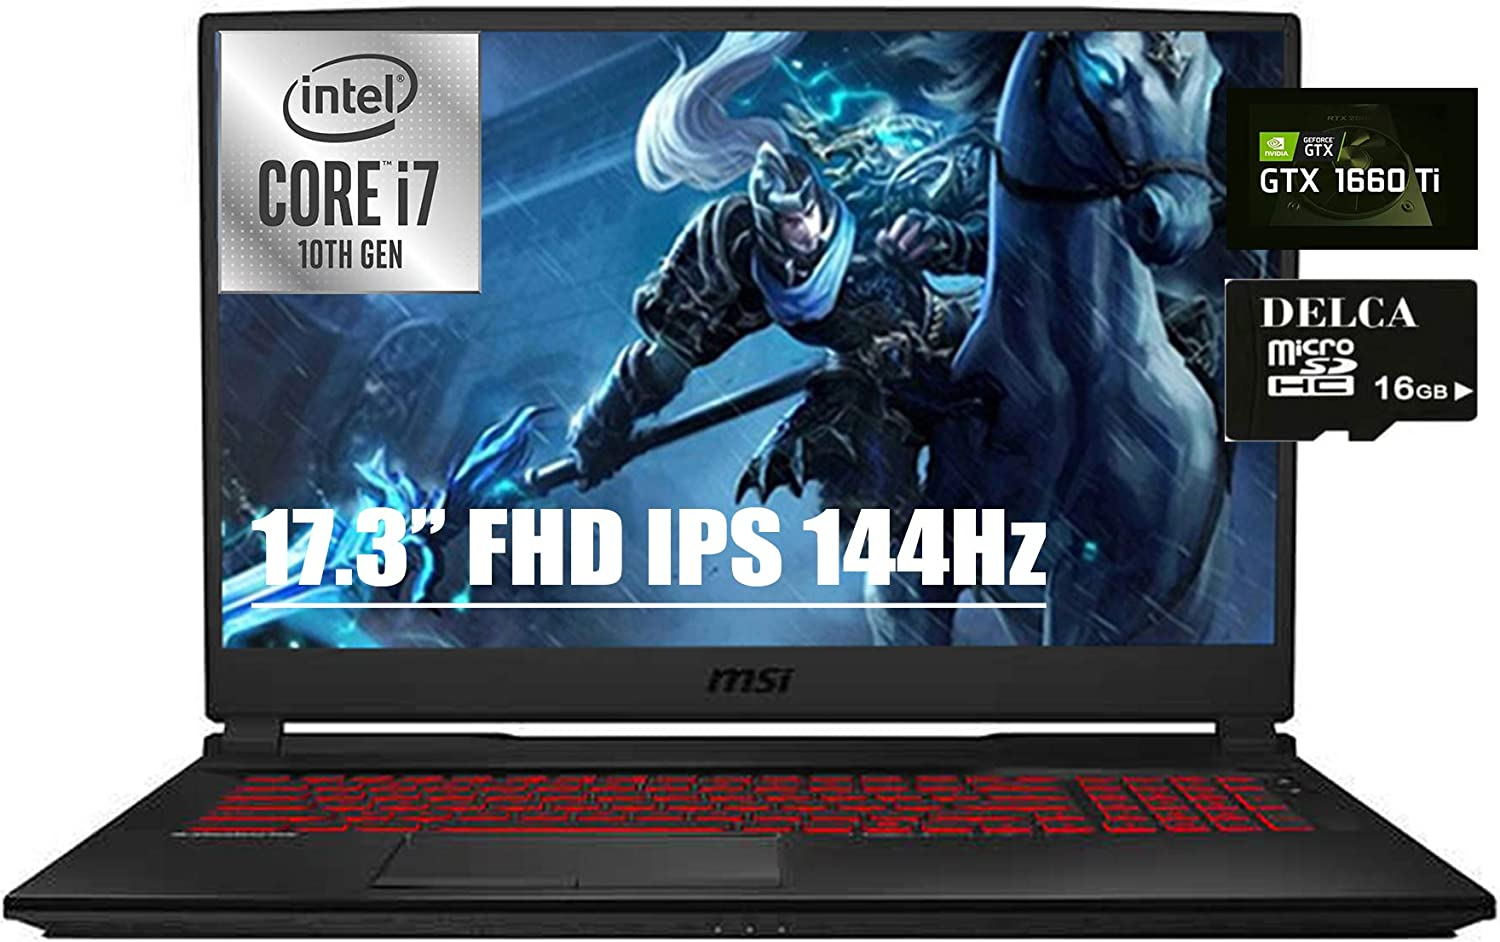 "2020 MSI GL75 Leopard Gaming Laptop I 17.3"" FHD IPS 144Hz 3ms 100% sRGB I Intel Hexa-Core i7-10750H I 32GB DDR4 512GB SSD 1TB HDD I 6GB GTX 1660Ti Backlit Webcam Win 10 + Delca 16GB Micro SD Card"